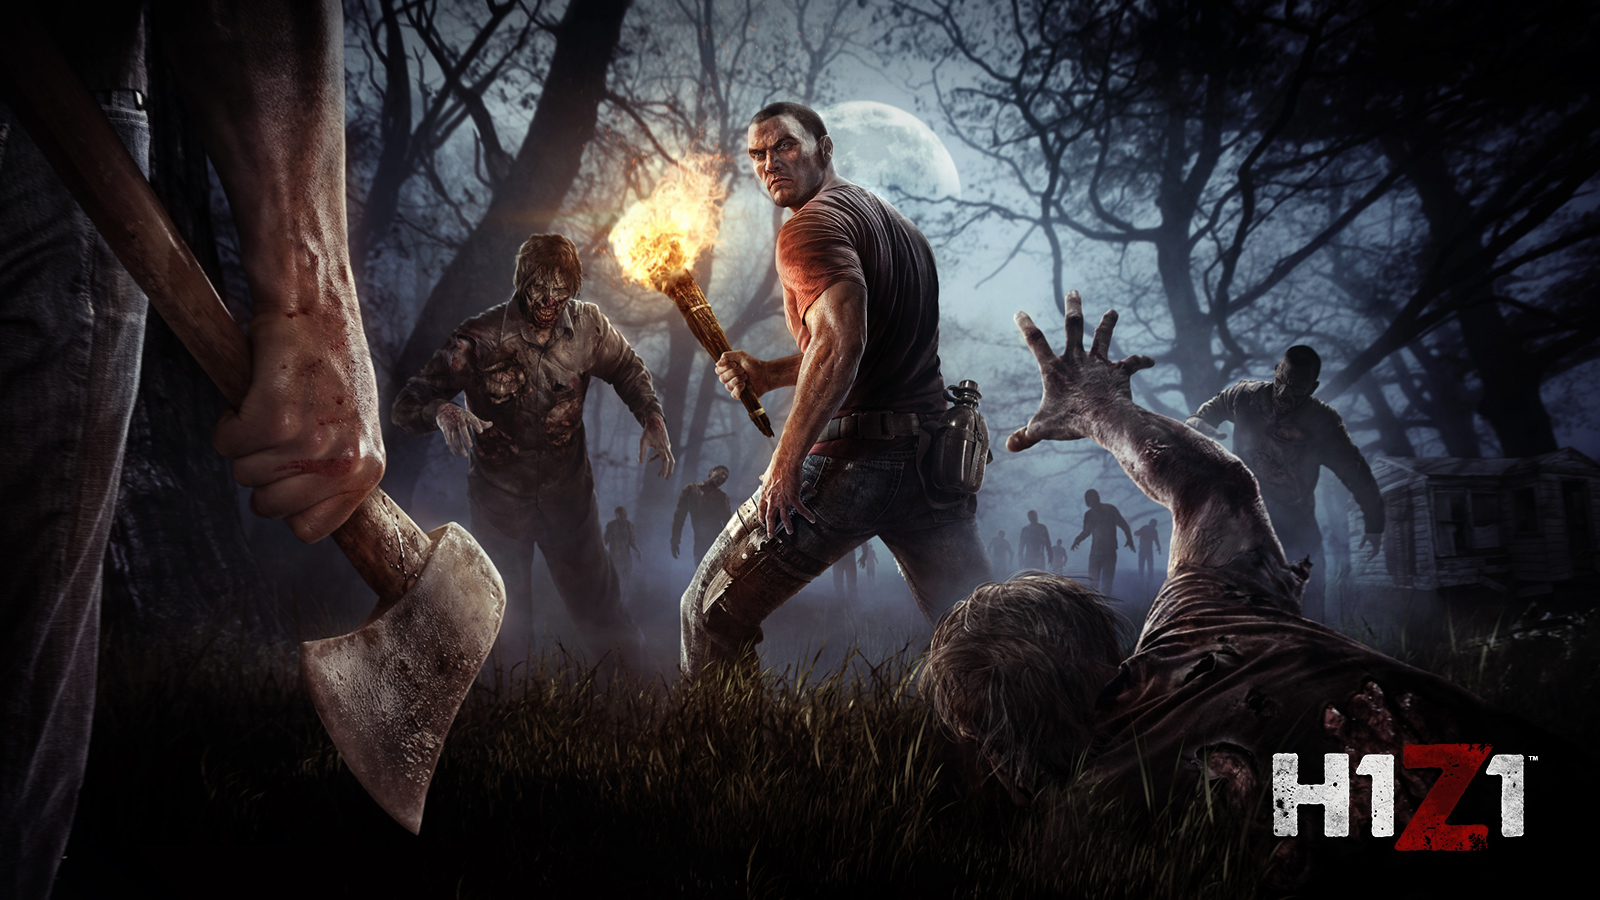 Free-To-Play Battle Royale H1Z1 To Release On PS4 This May | ST